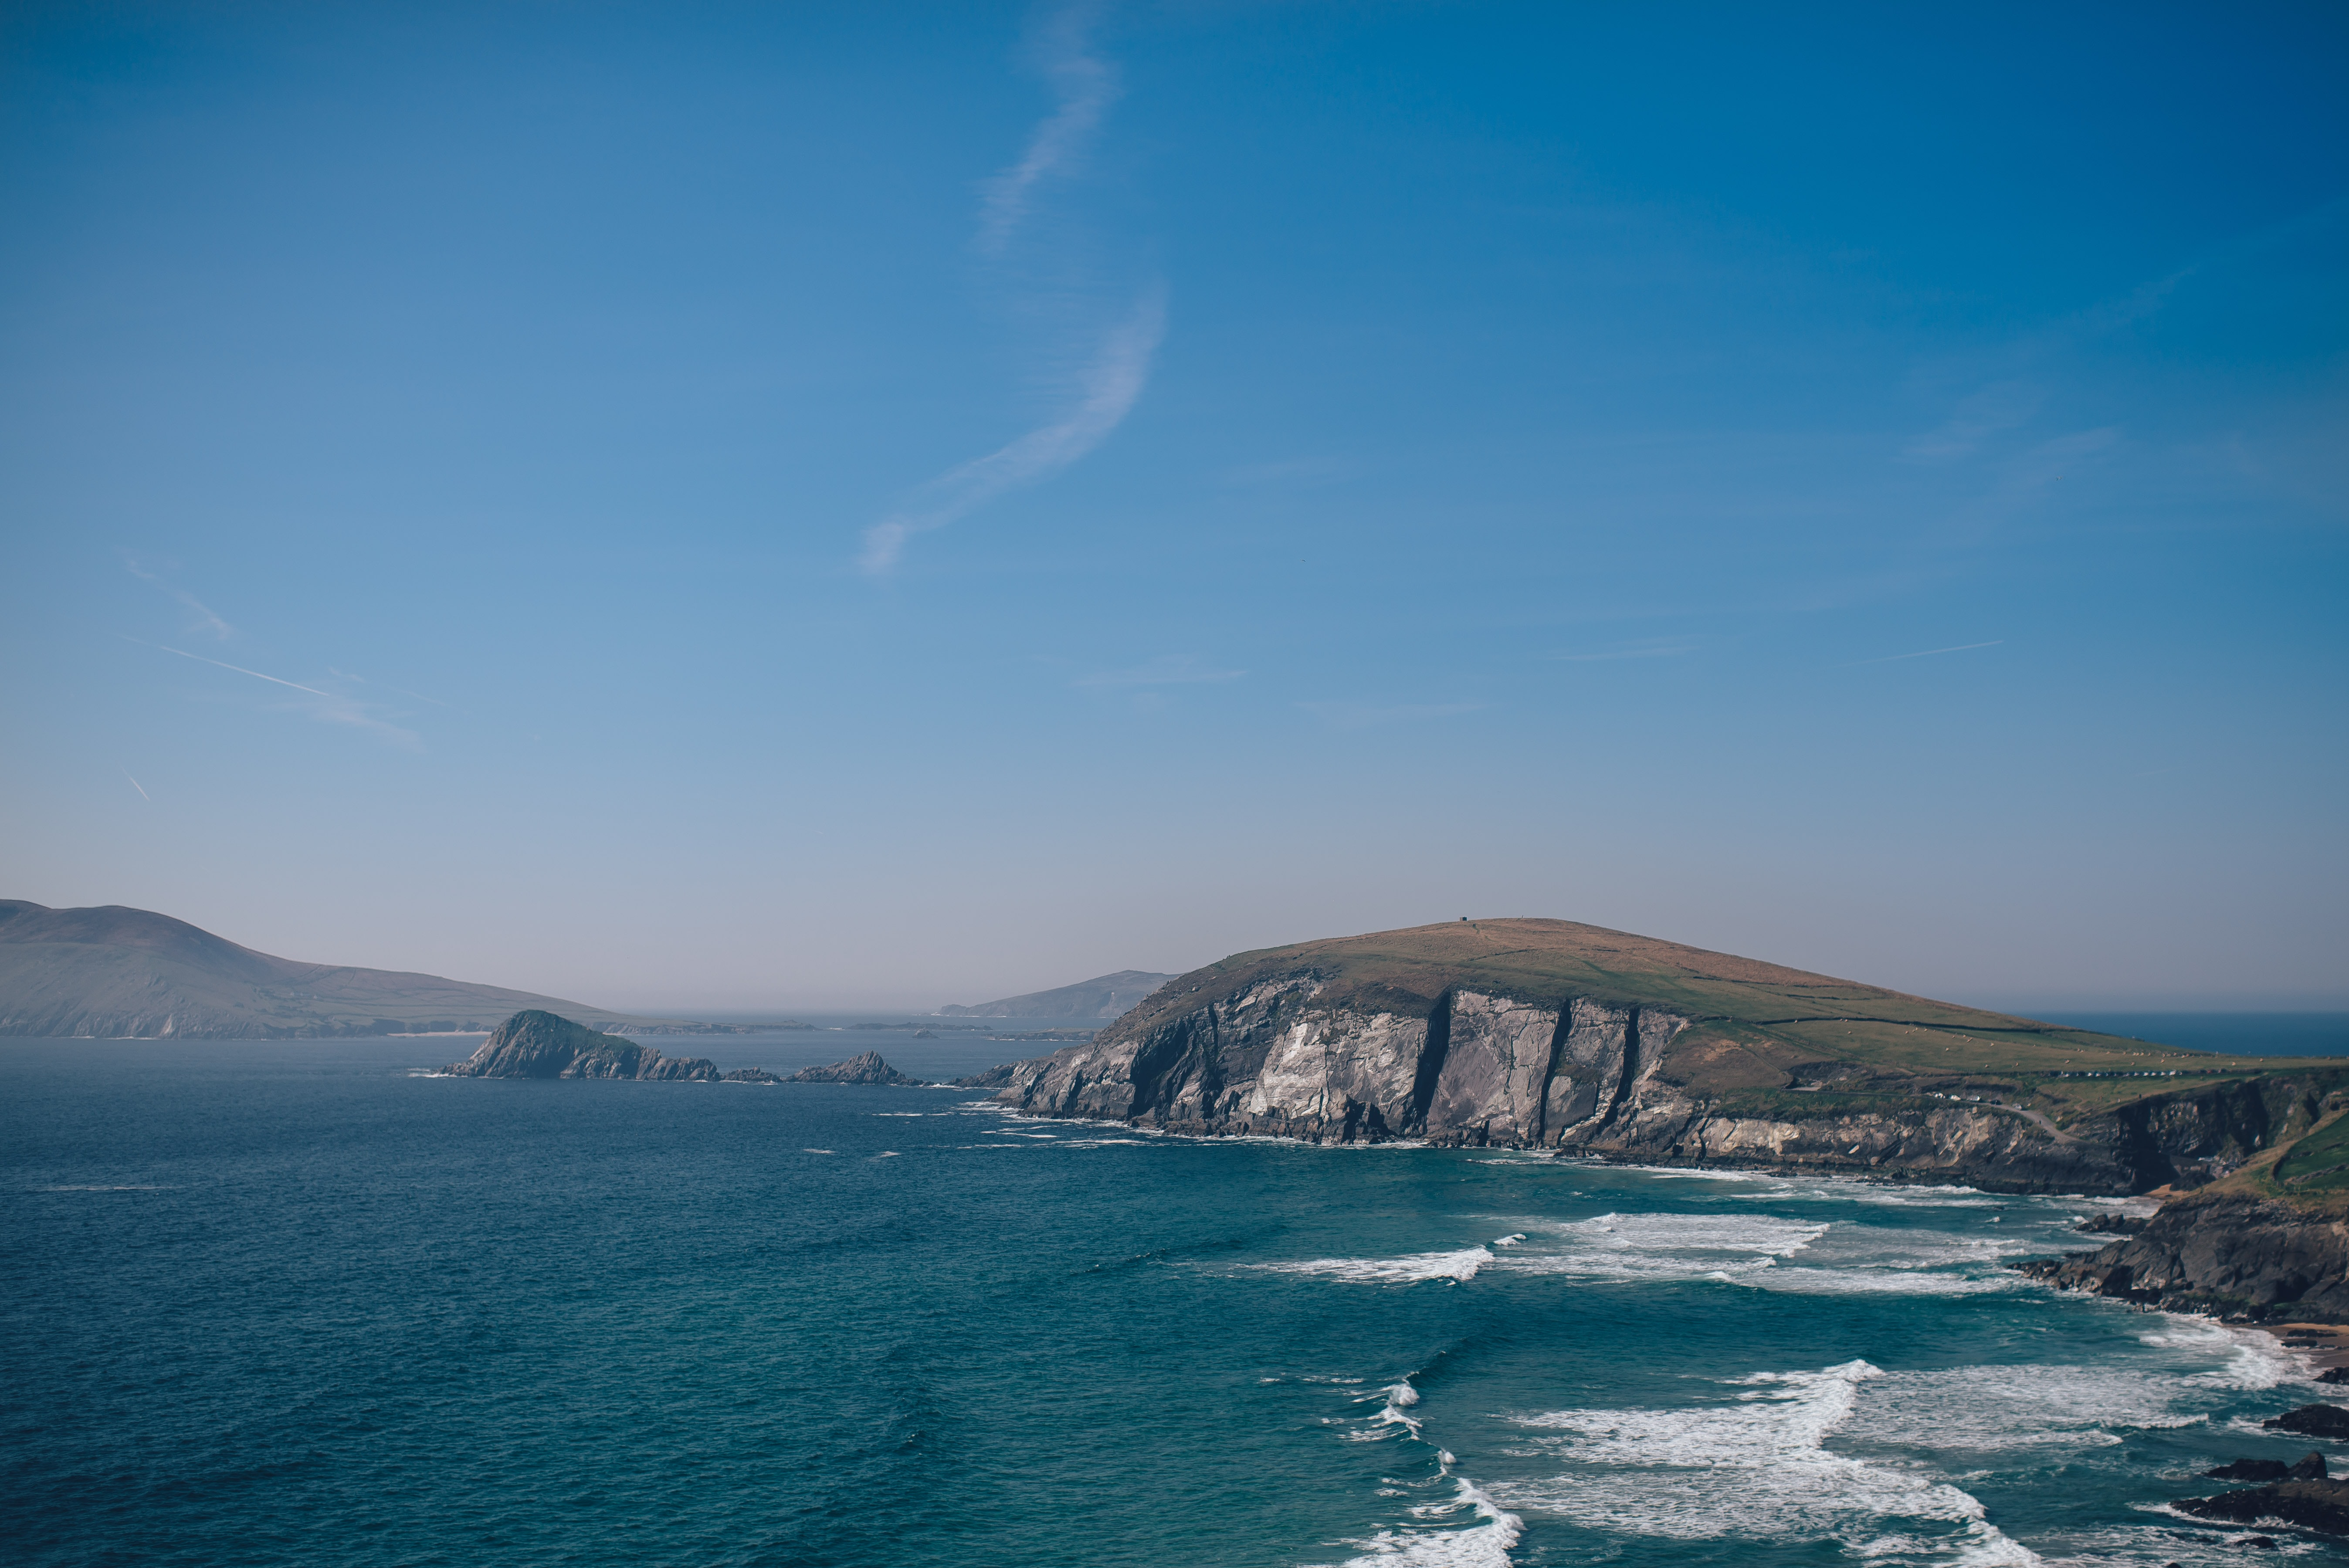 sea waves beside gray and green cliff under clear blue sky during daytime